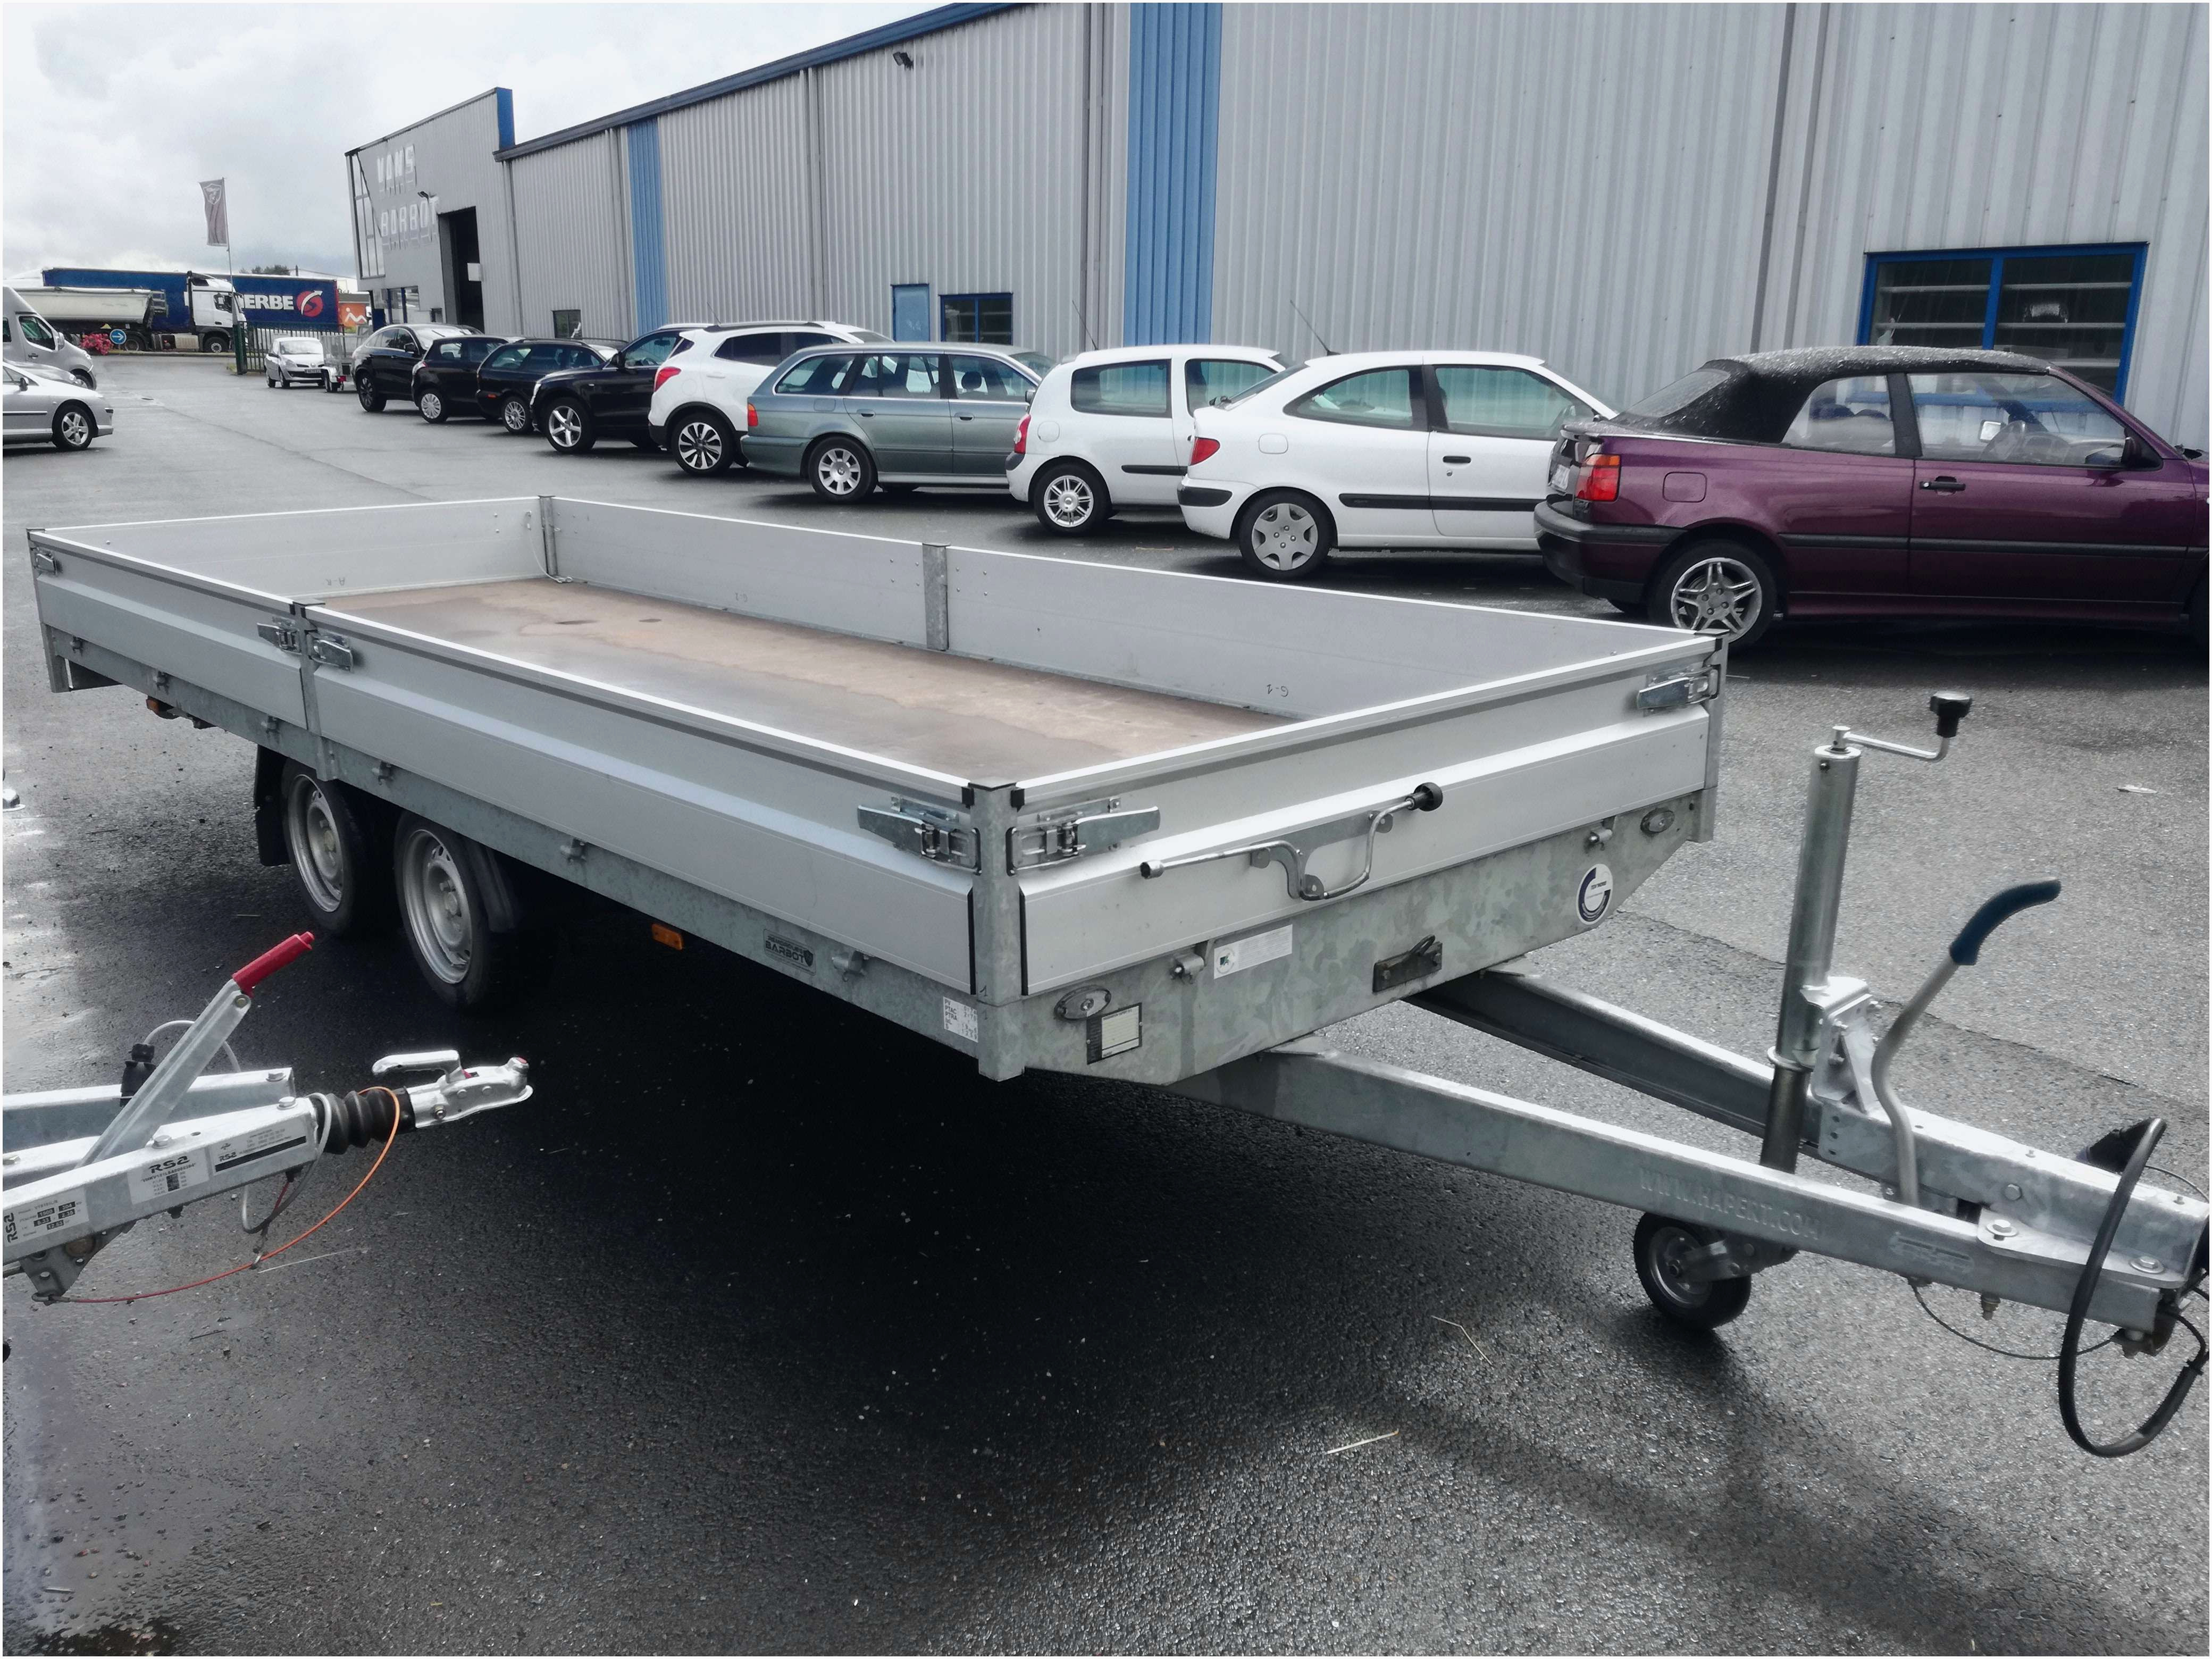 Camion Magasin Occasion Le Bon Coin Gamboahinestrosa